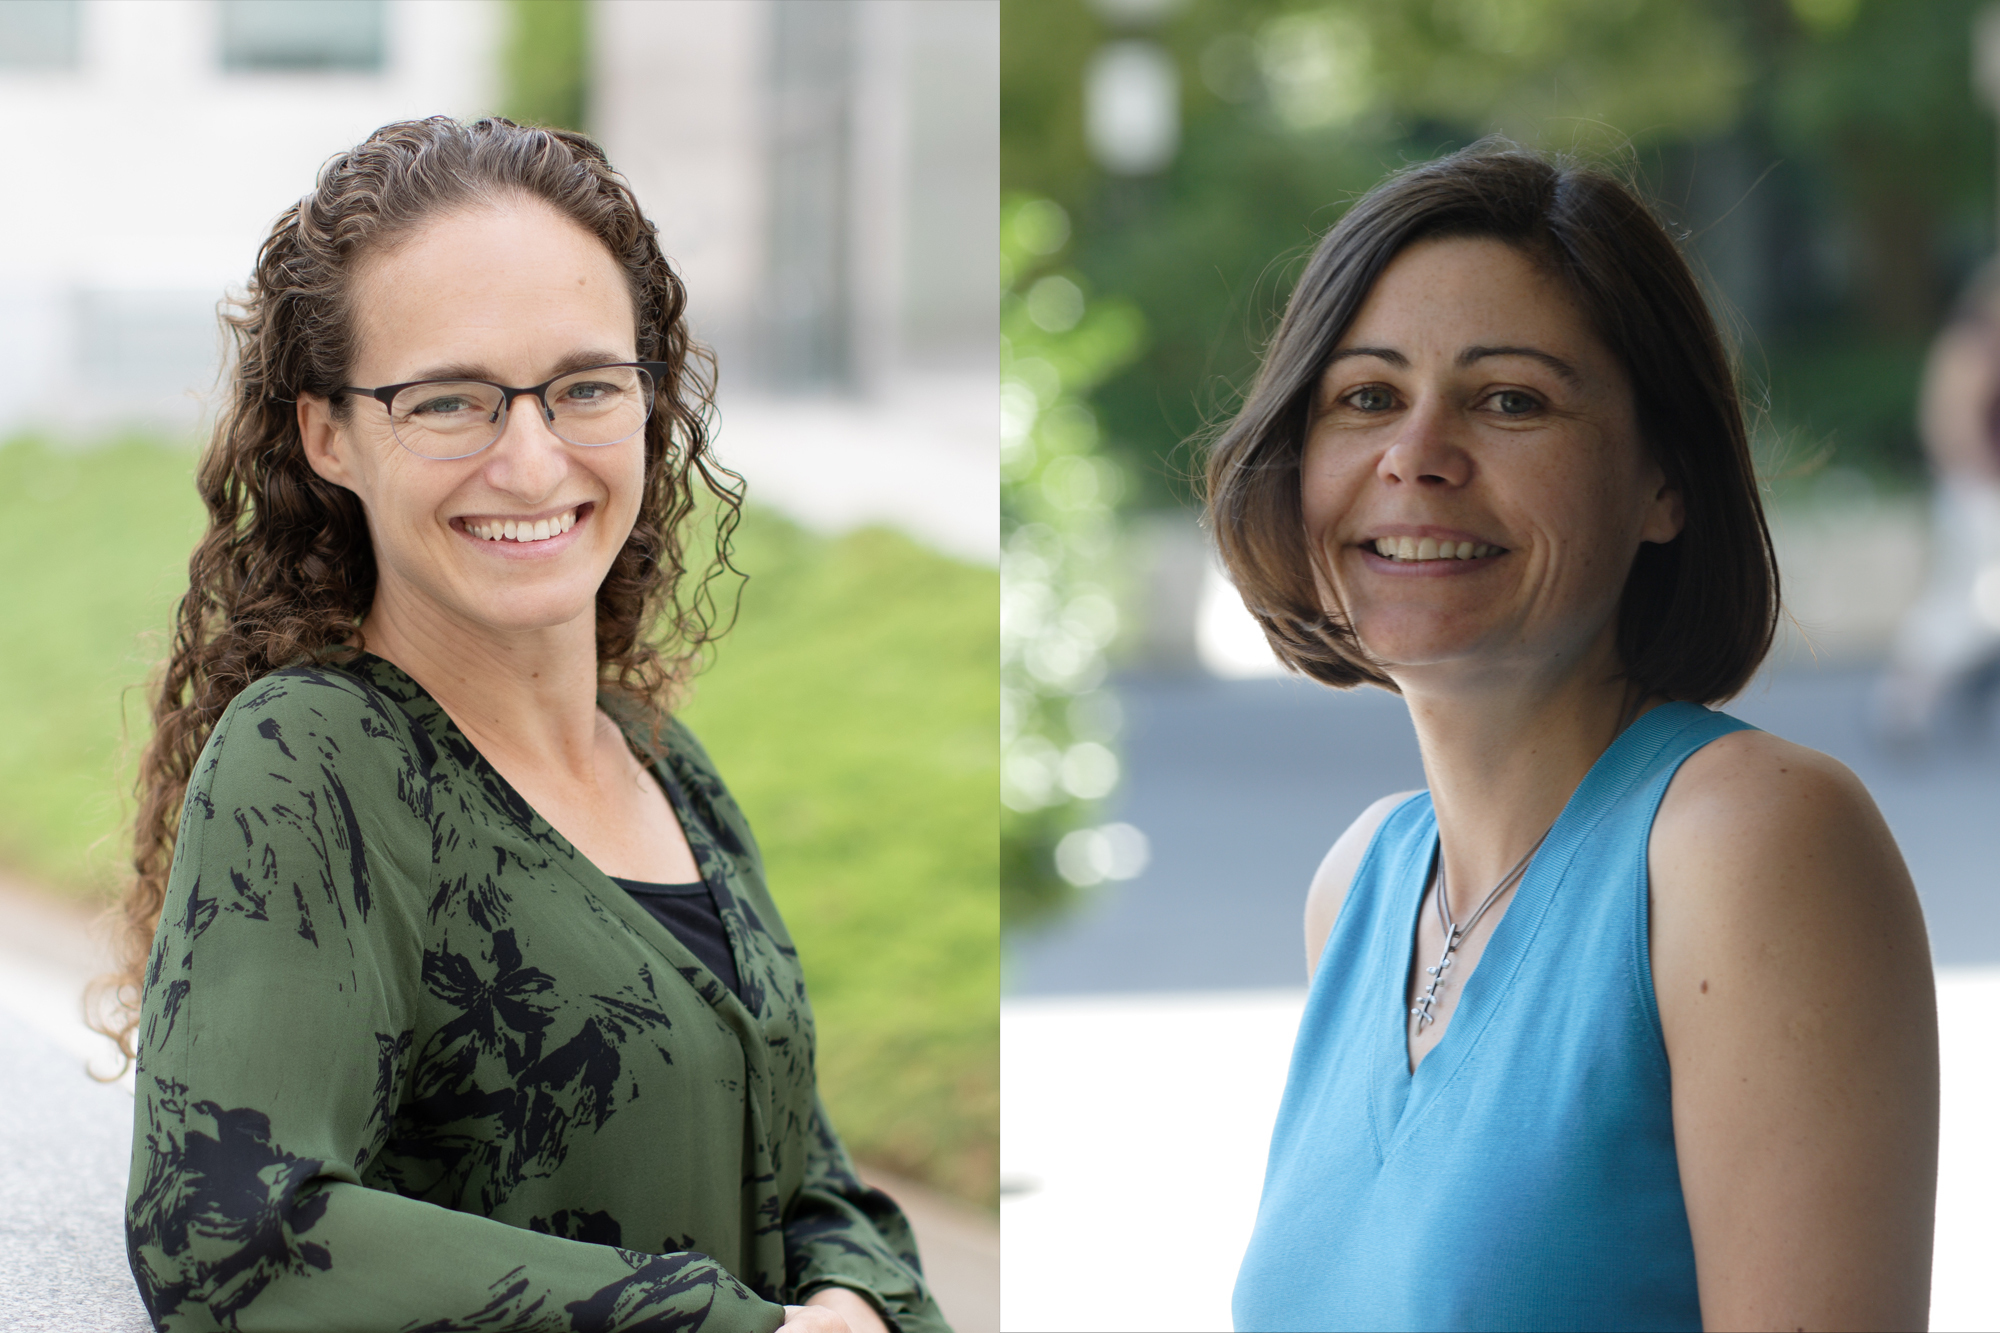 Jacqueline Lees and Rebecca Saxe named associate deans of science